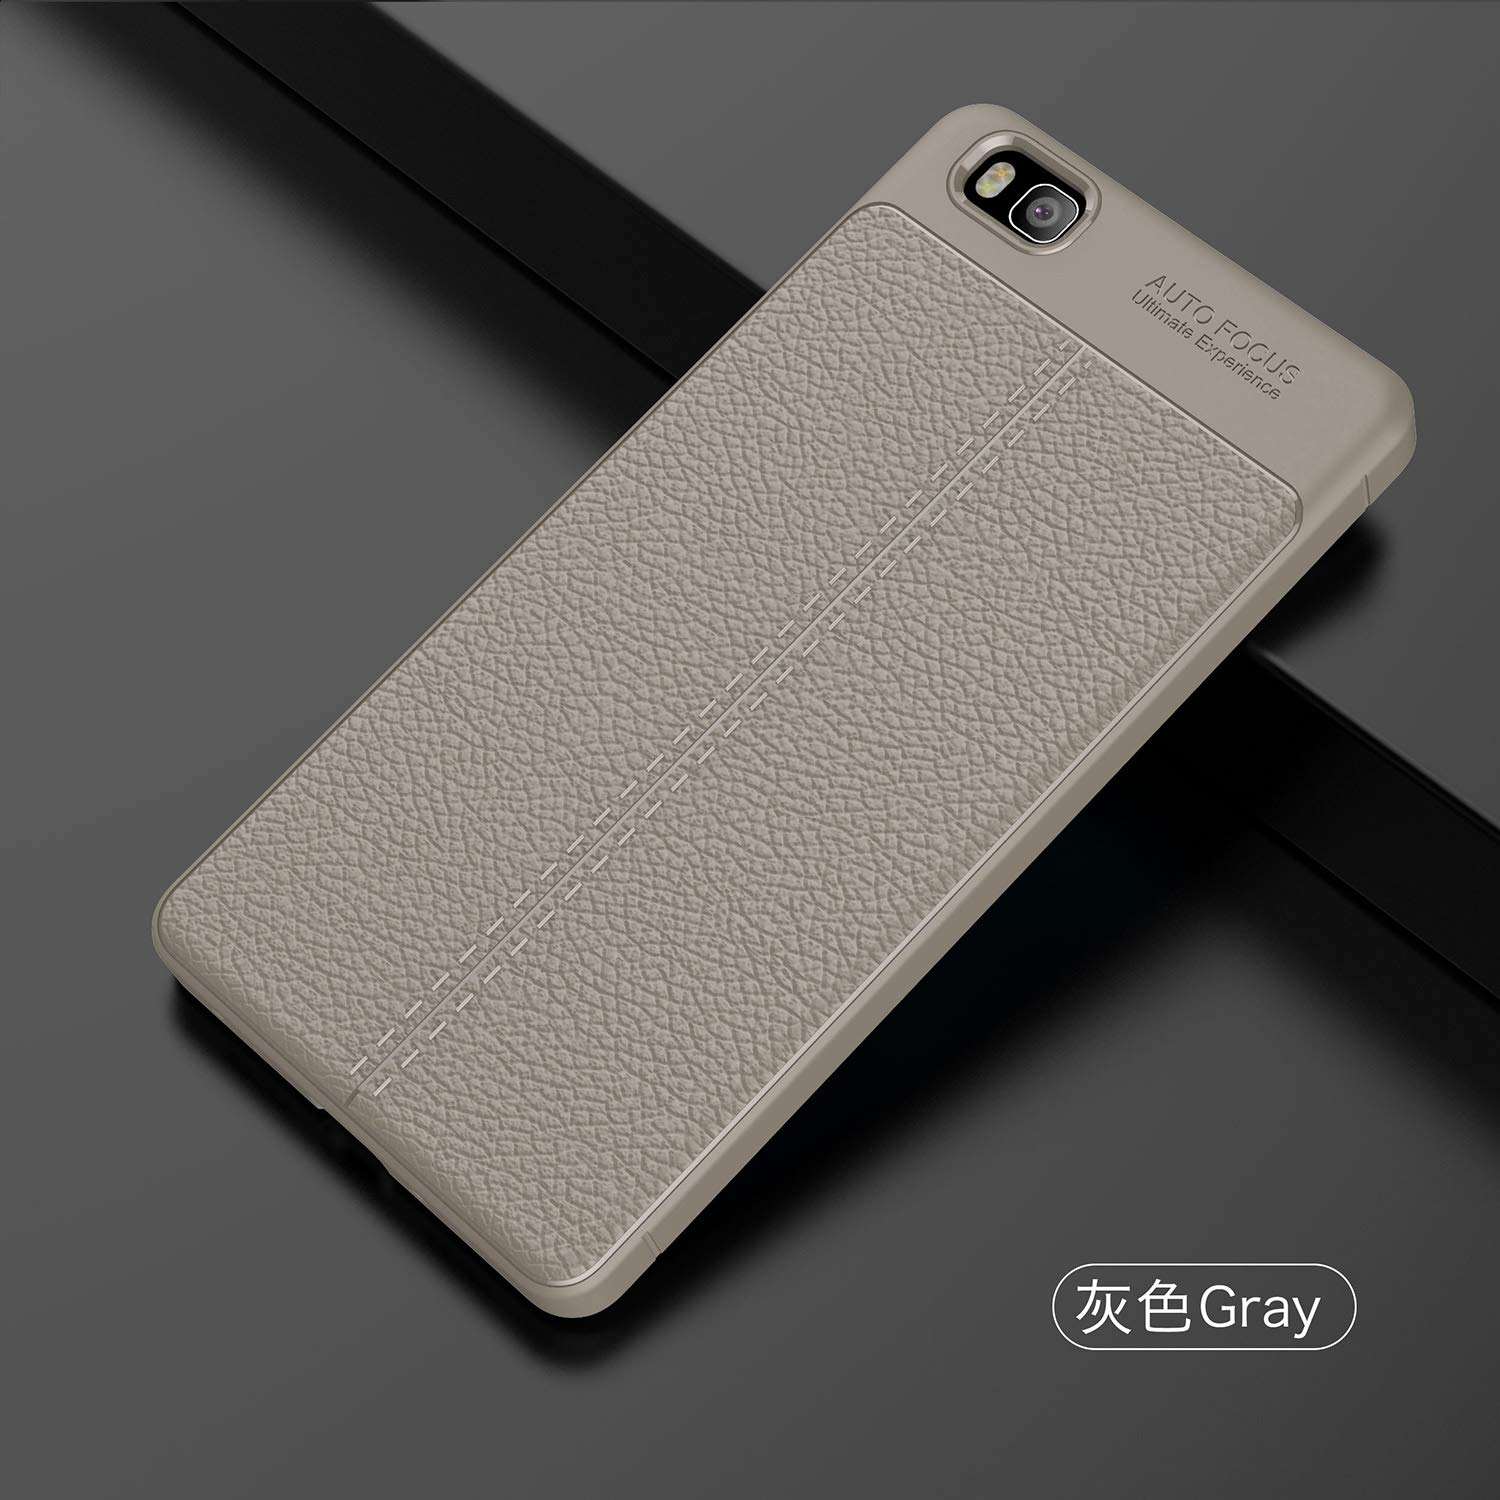 Amazon.com: Huawei P8 Lite Case Huawei P8 Mini Cover ...